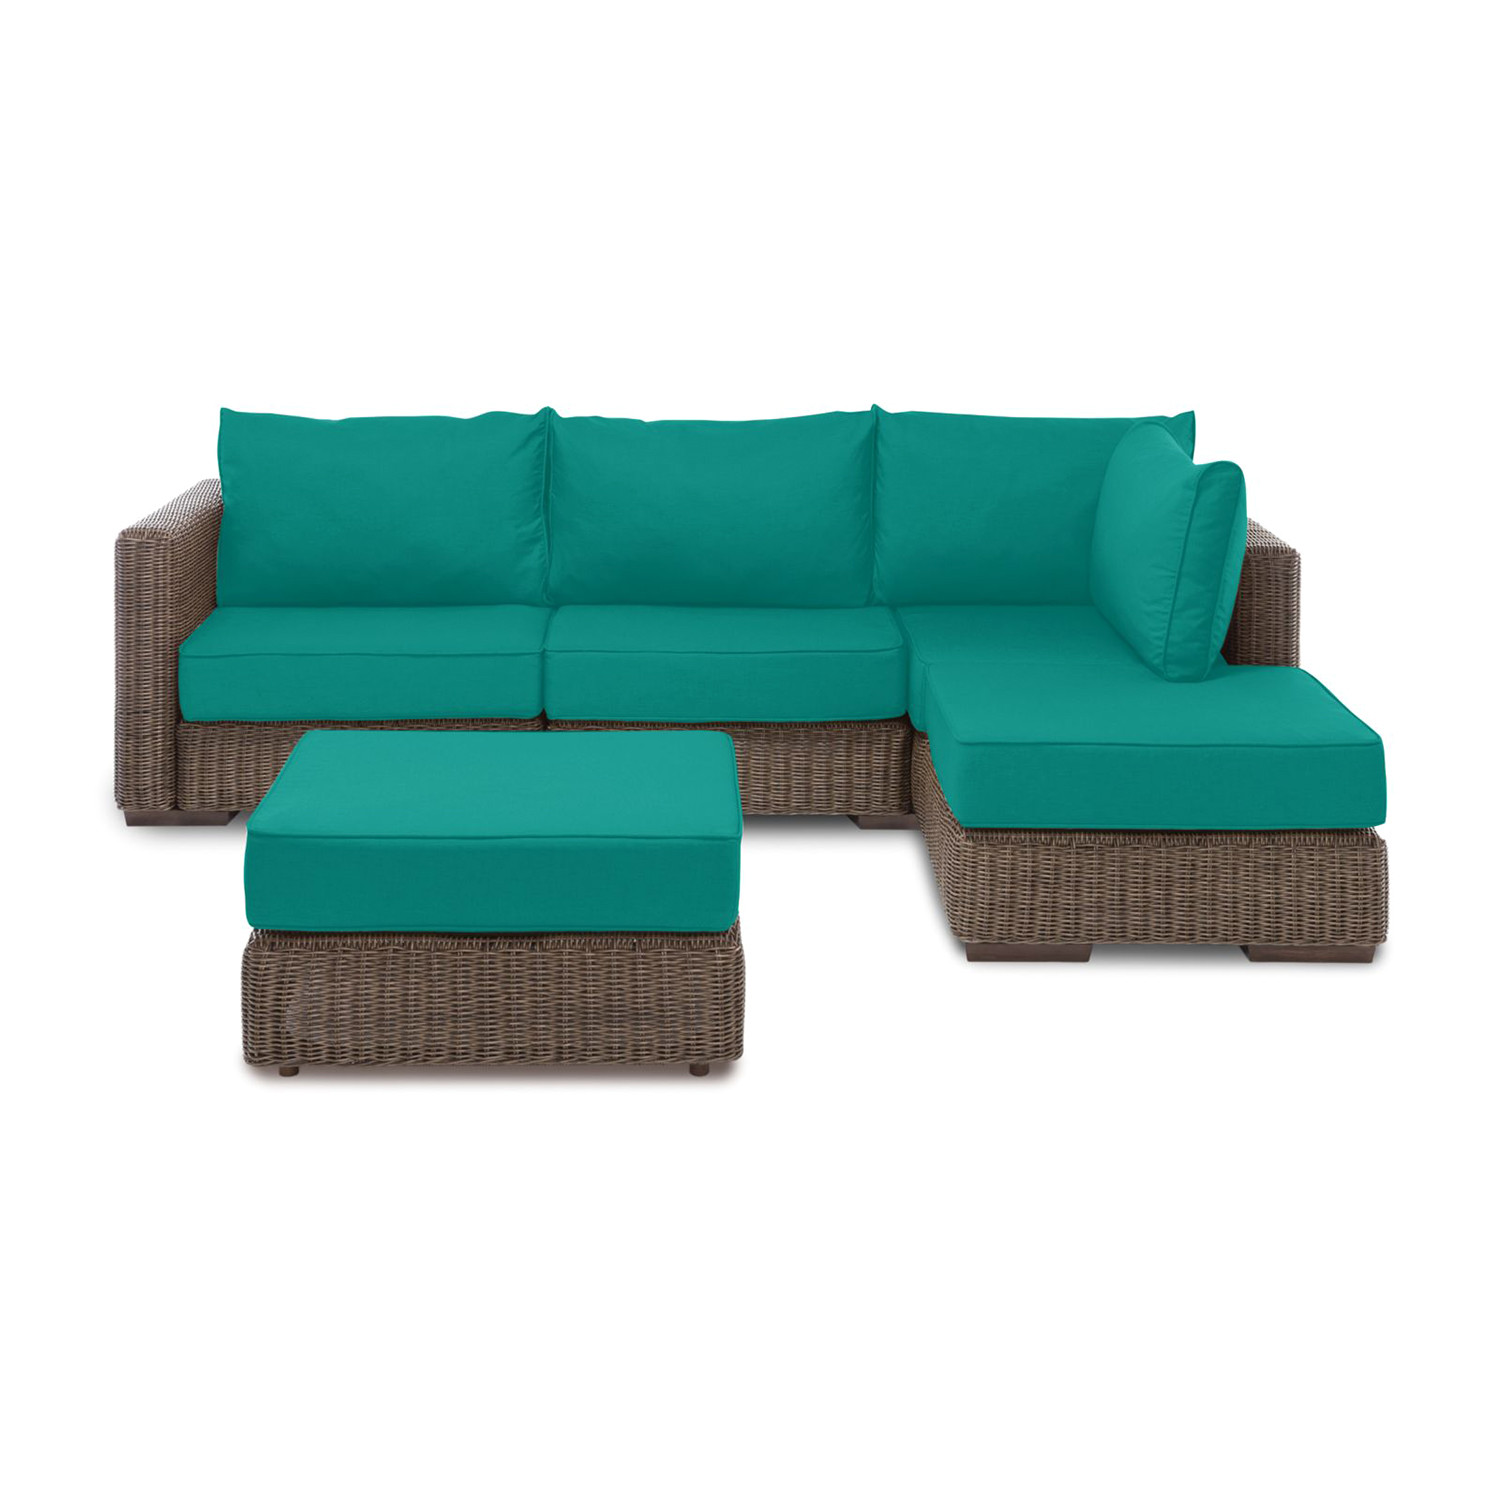 lovesac sofa covers beds queen size reviews outdoor chaise sectional 43 ottoman macaw sunbrella cover